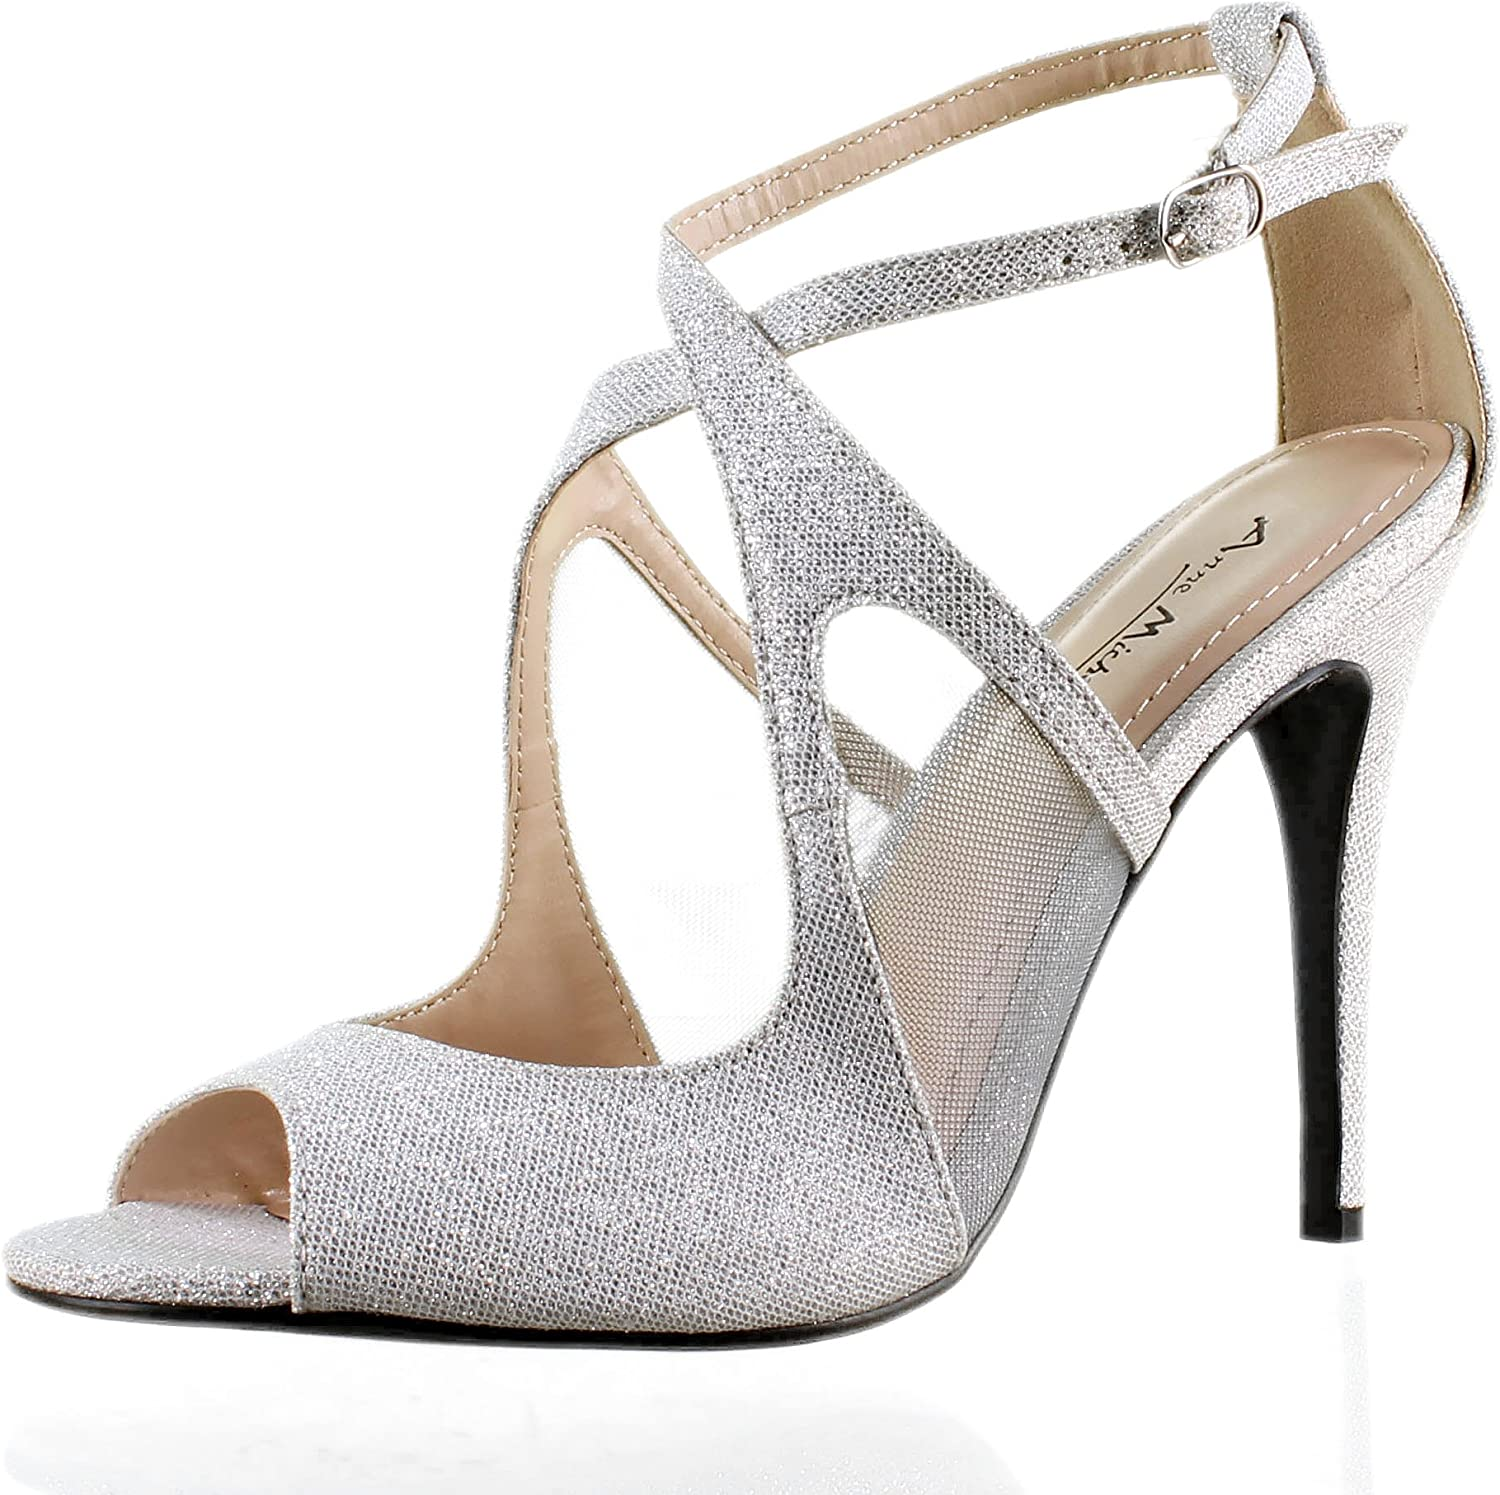 Hot Womens Party Shoes Shiny Synthetic Leather High Heels Strappy Pumps All Size